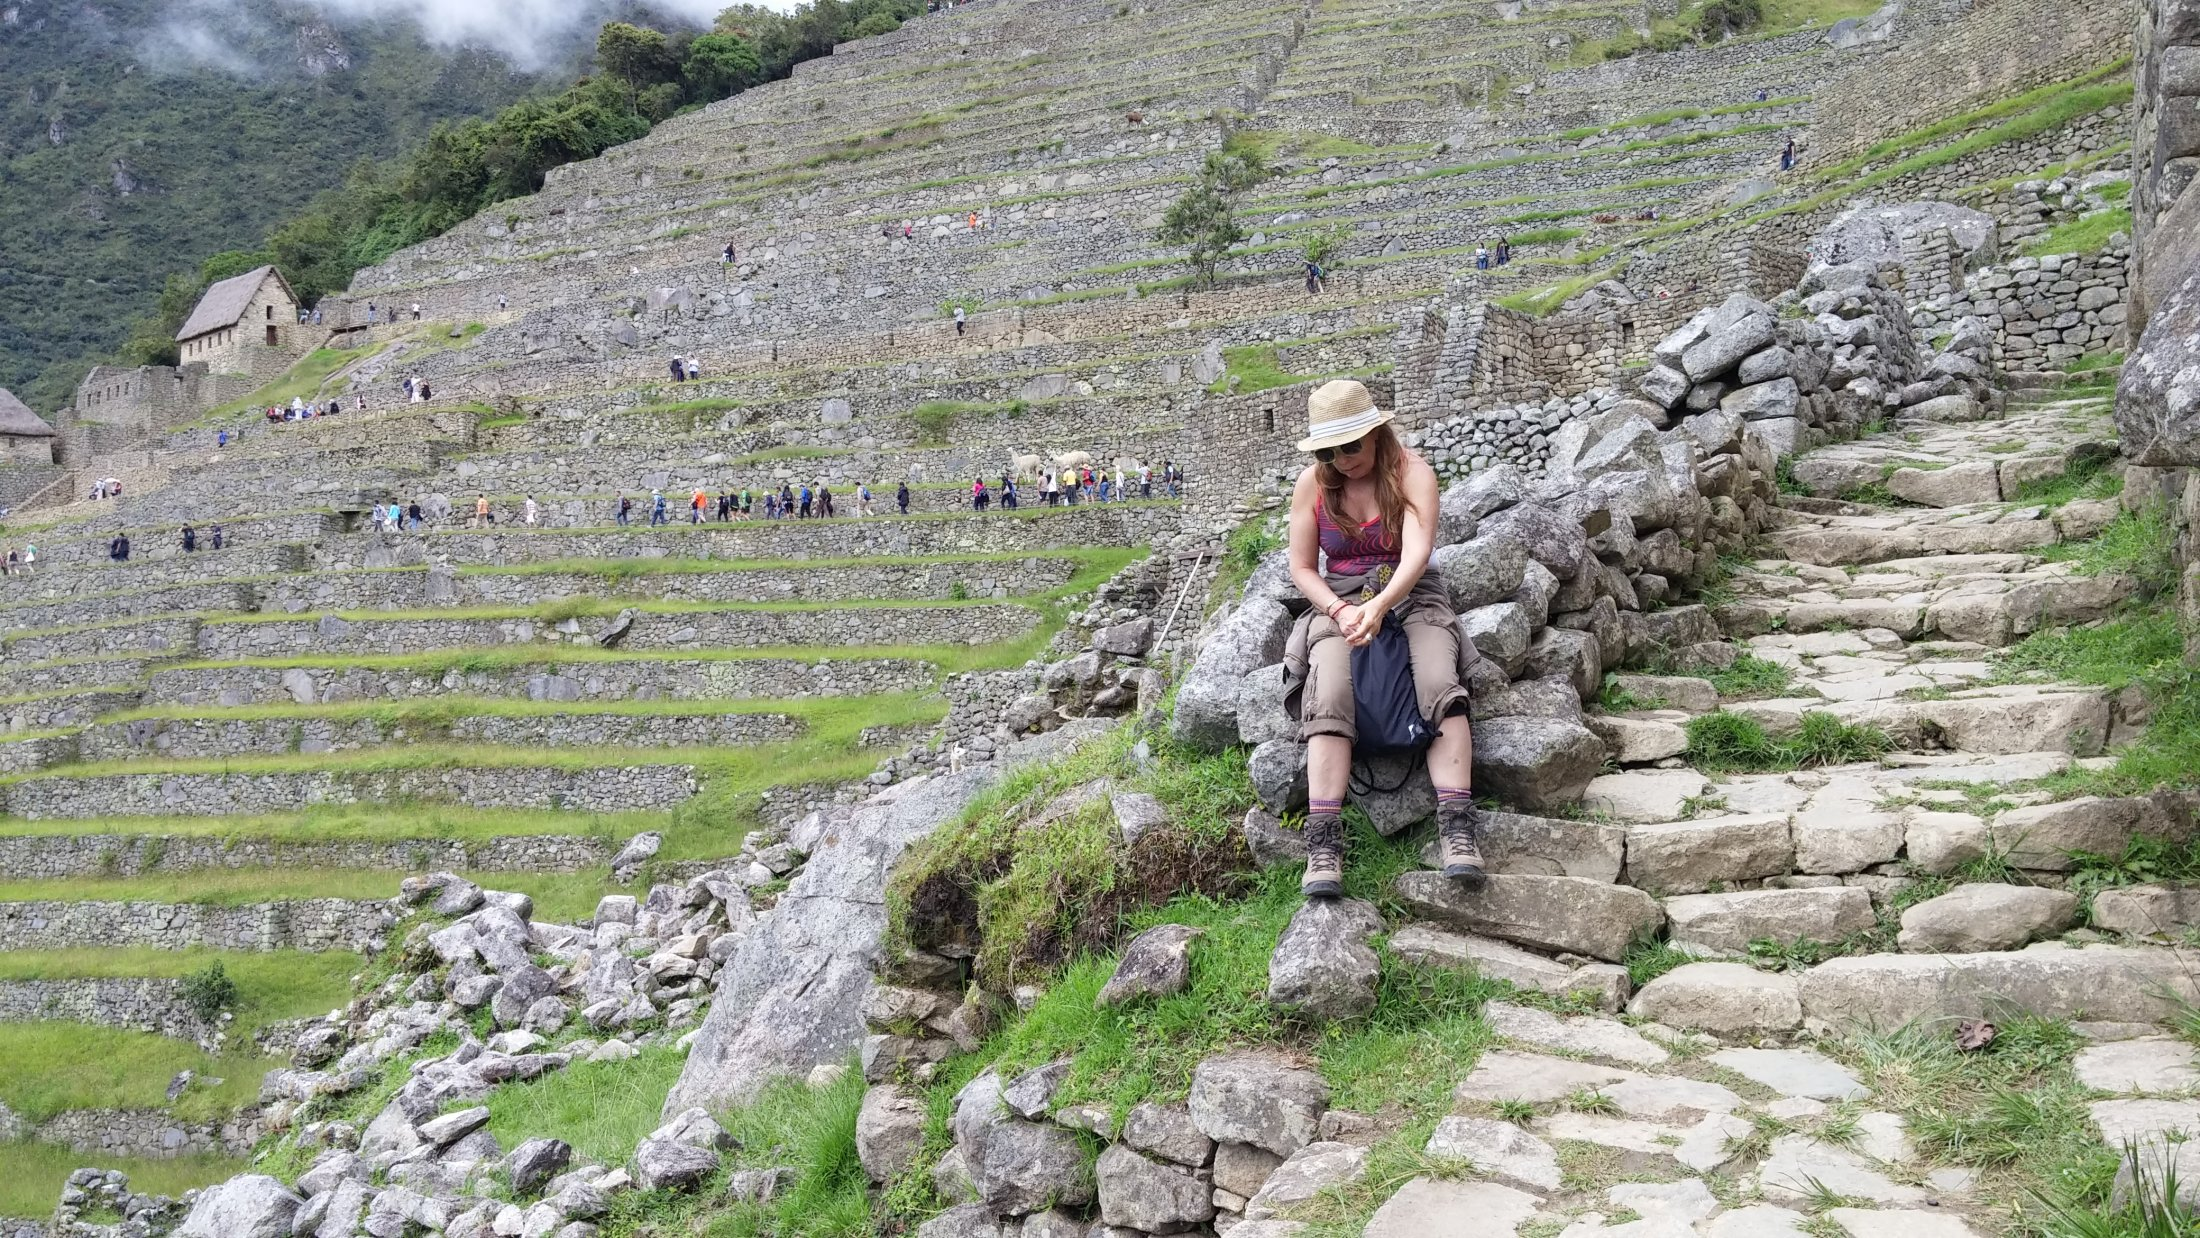 Betty contemplating the Incas